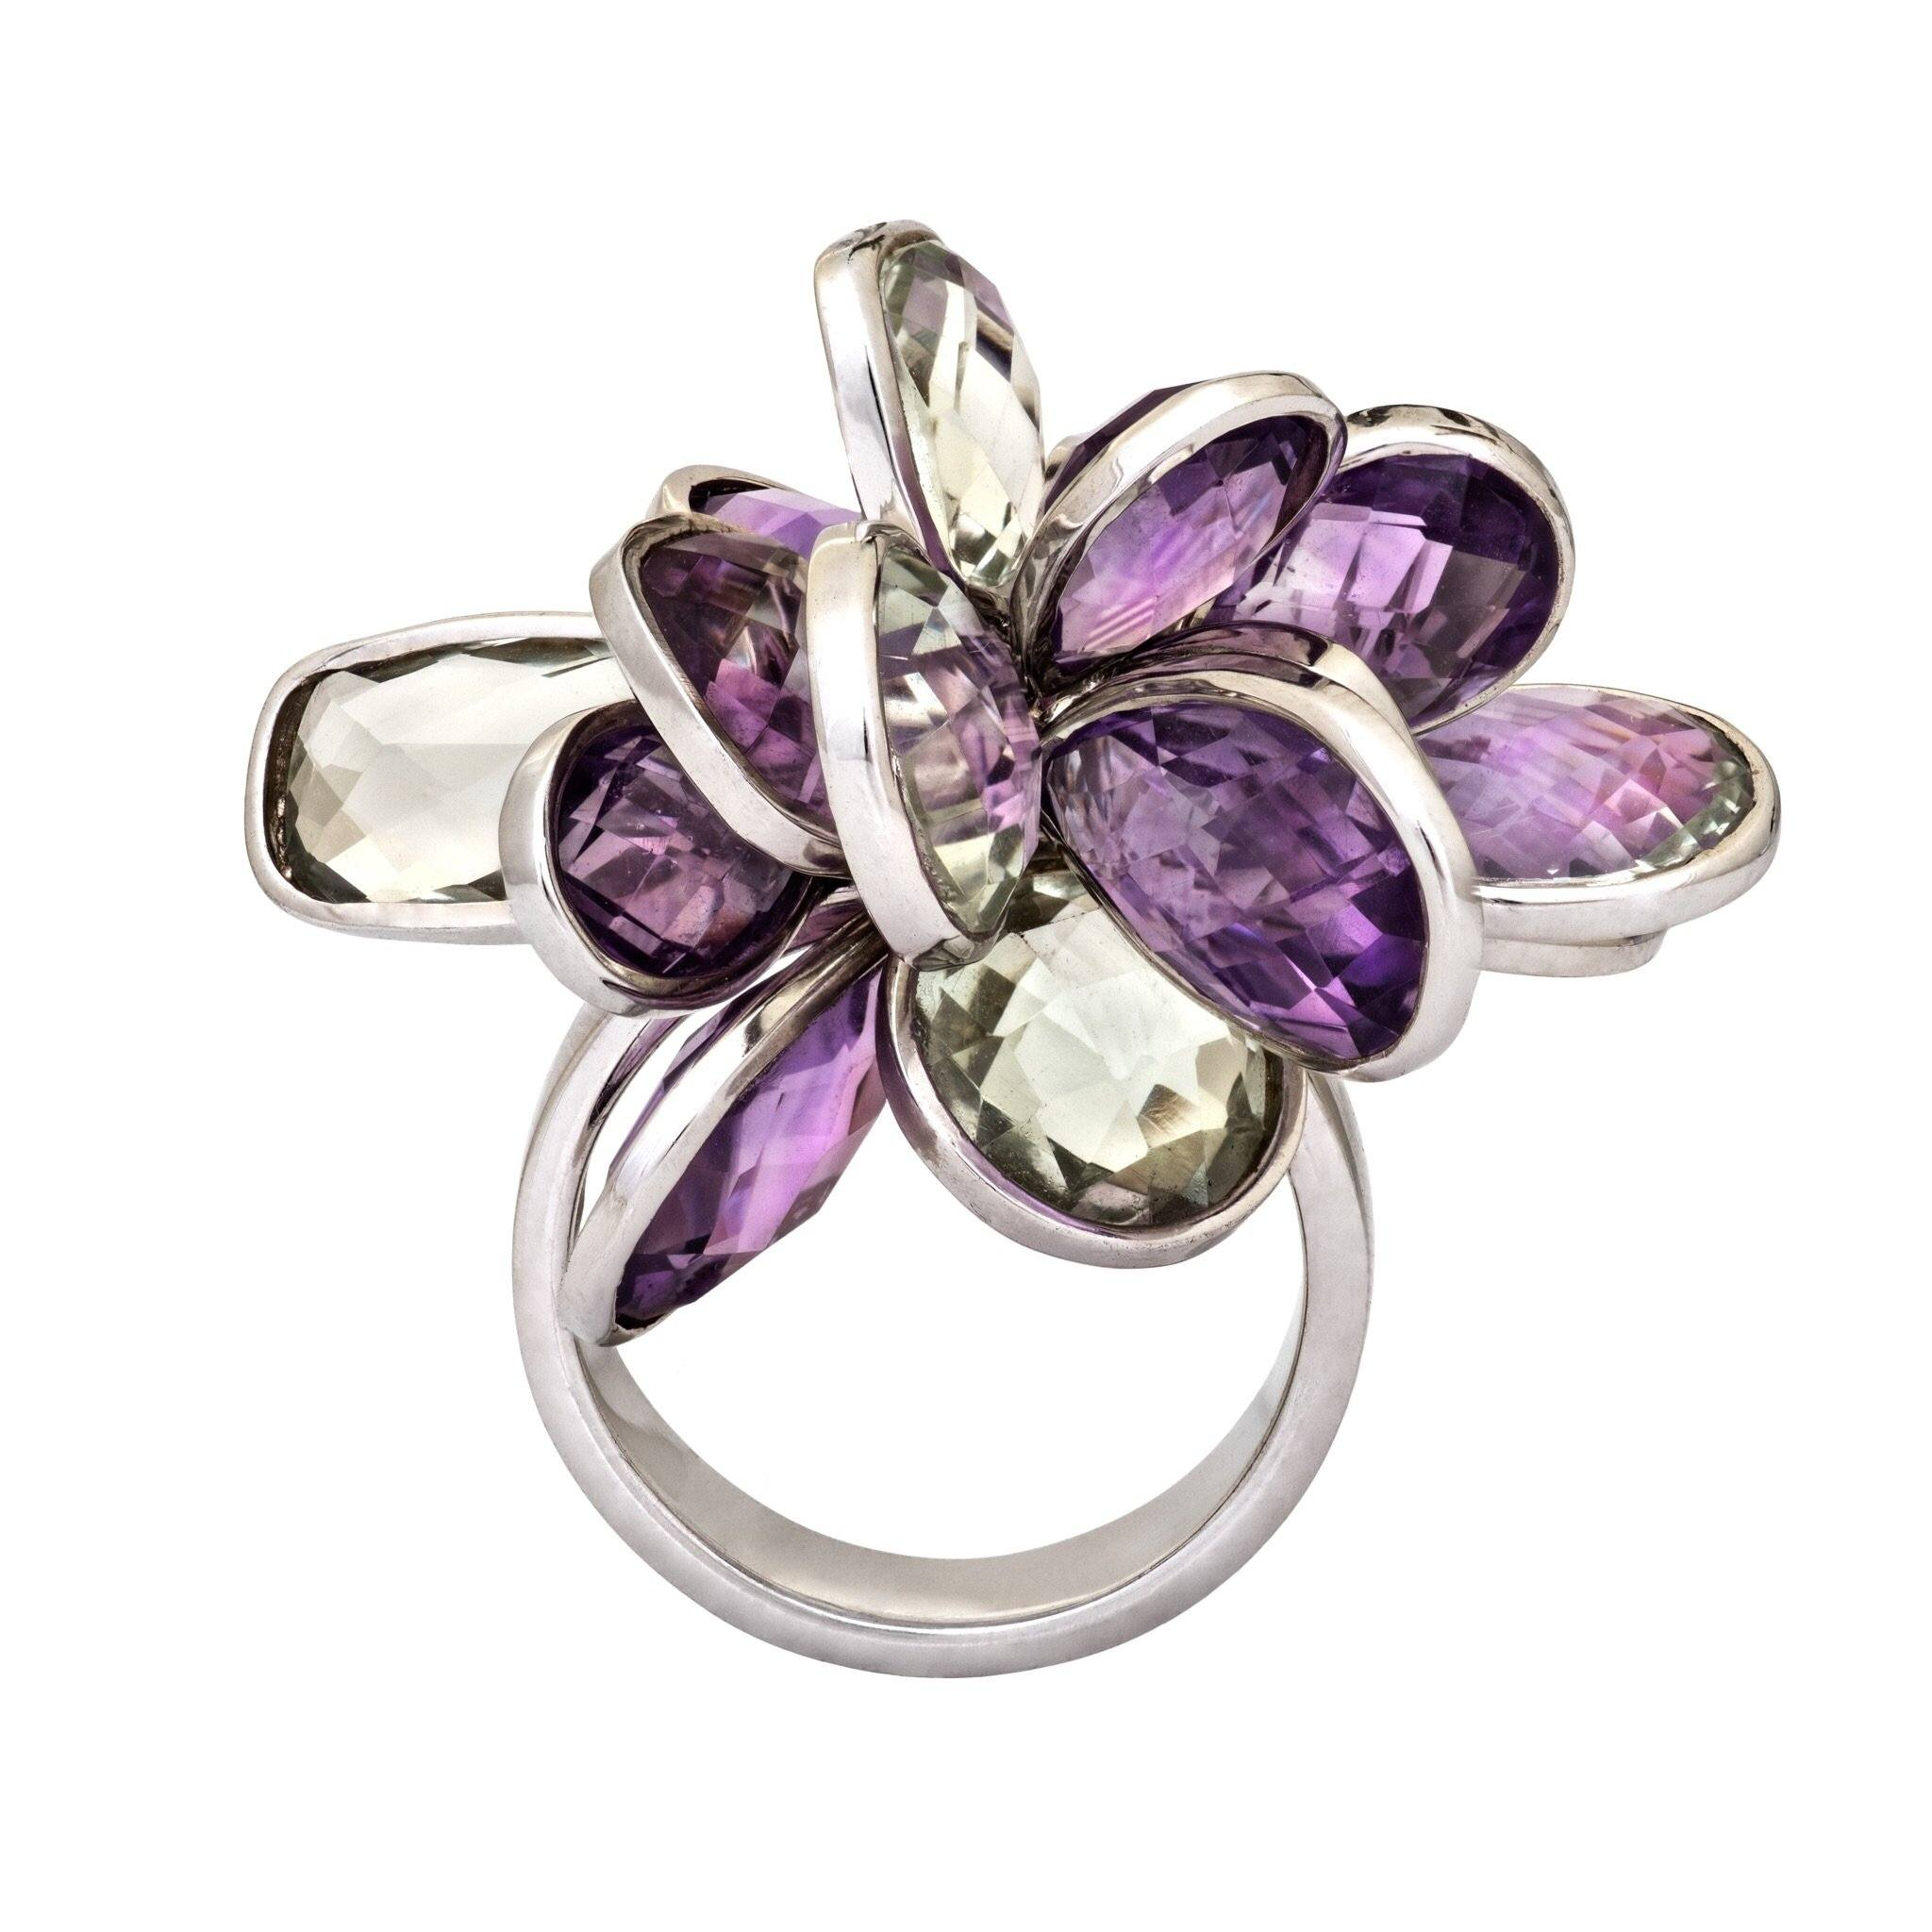 PURPLE RAIN amethyst ring - MadamSiam